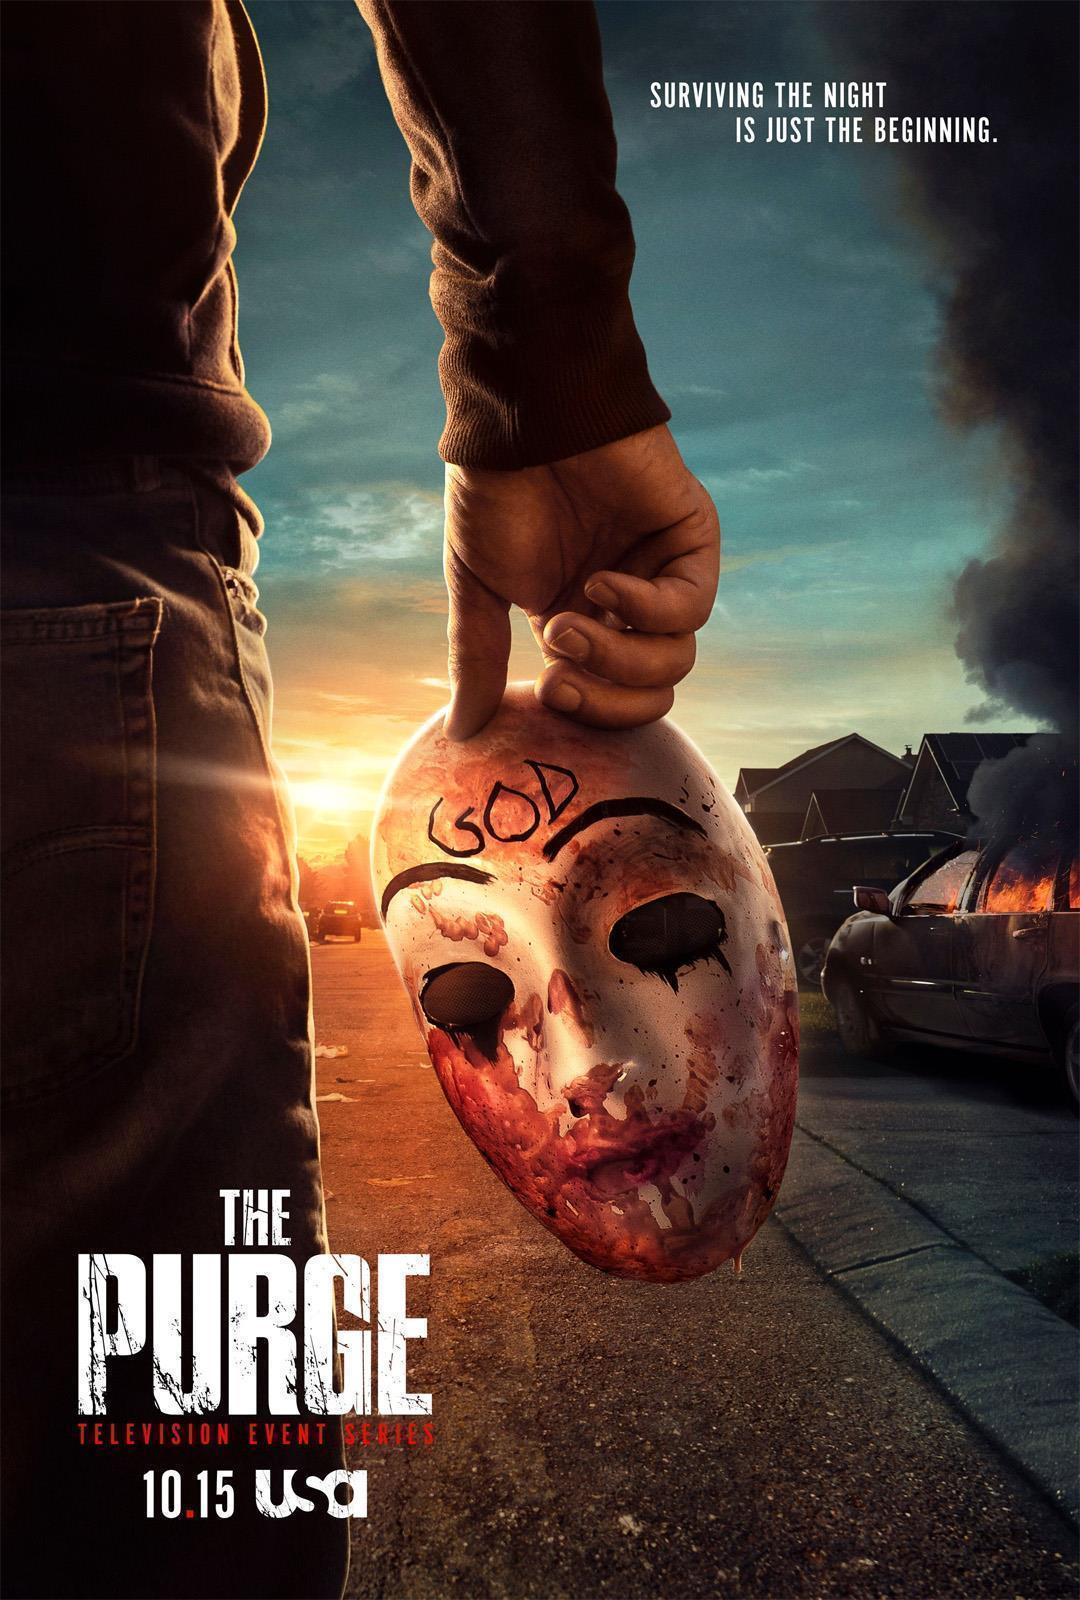 telecharger The Purge / American Nightmare S02E01 VOSTFR HDTV torrent9